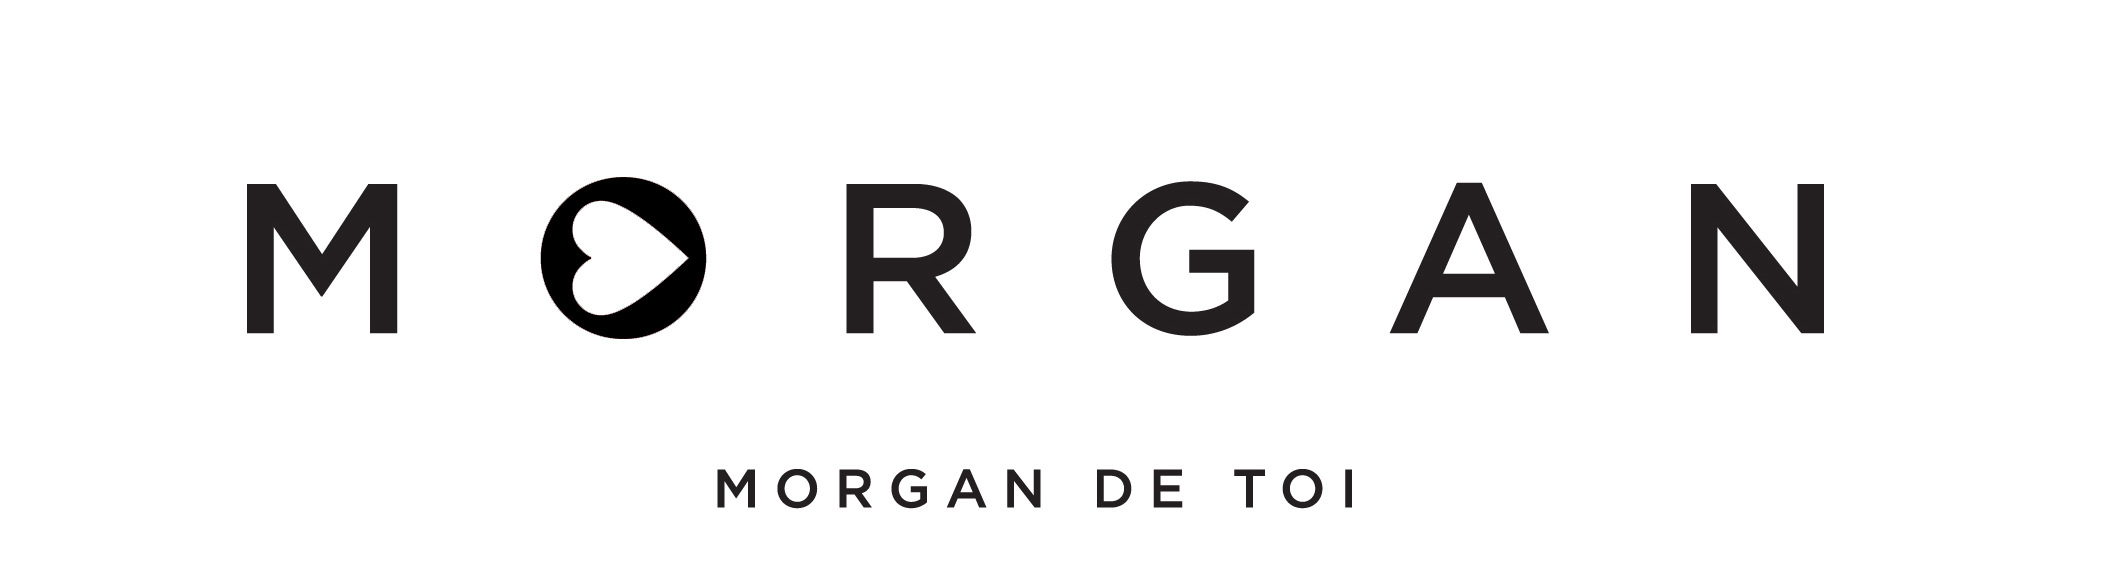 MORGAN-logo_black.jpg